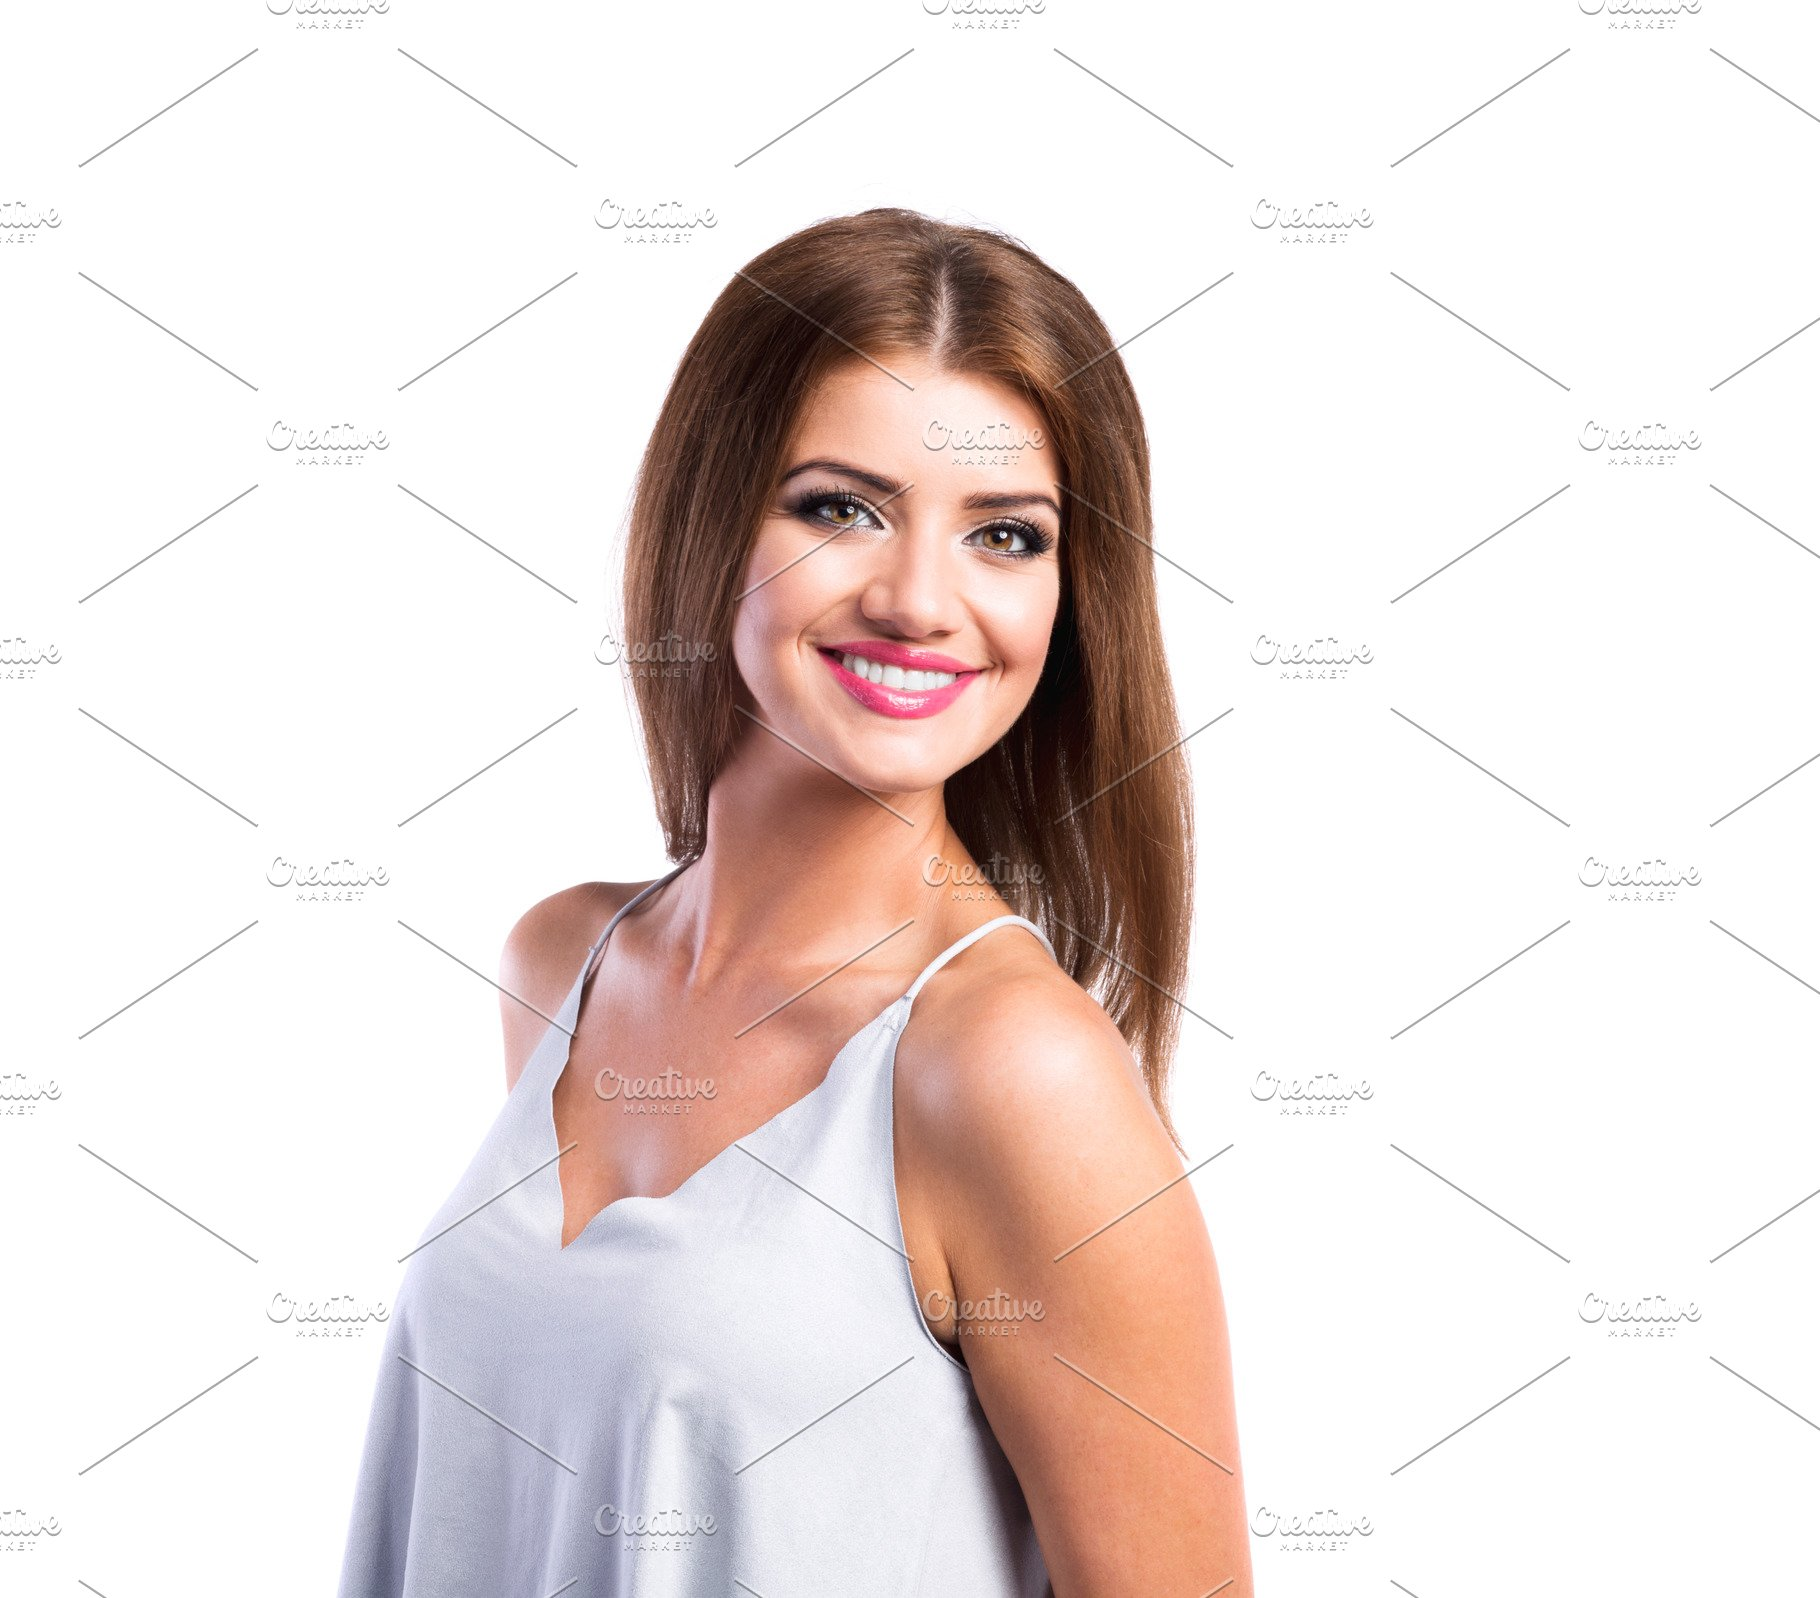 d509f01c92 Young beautiful woman in white top, studio shot, isolated ~ People ...